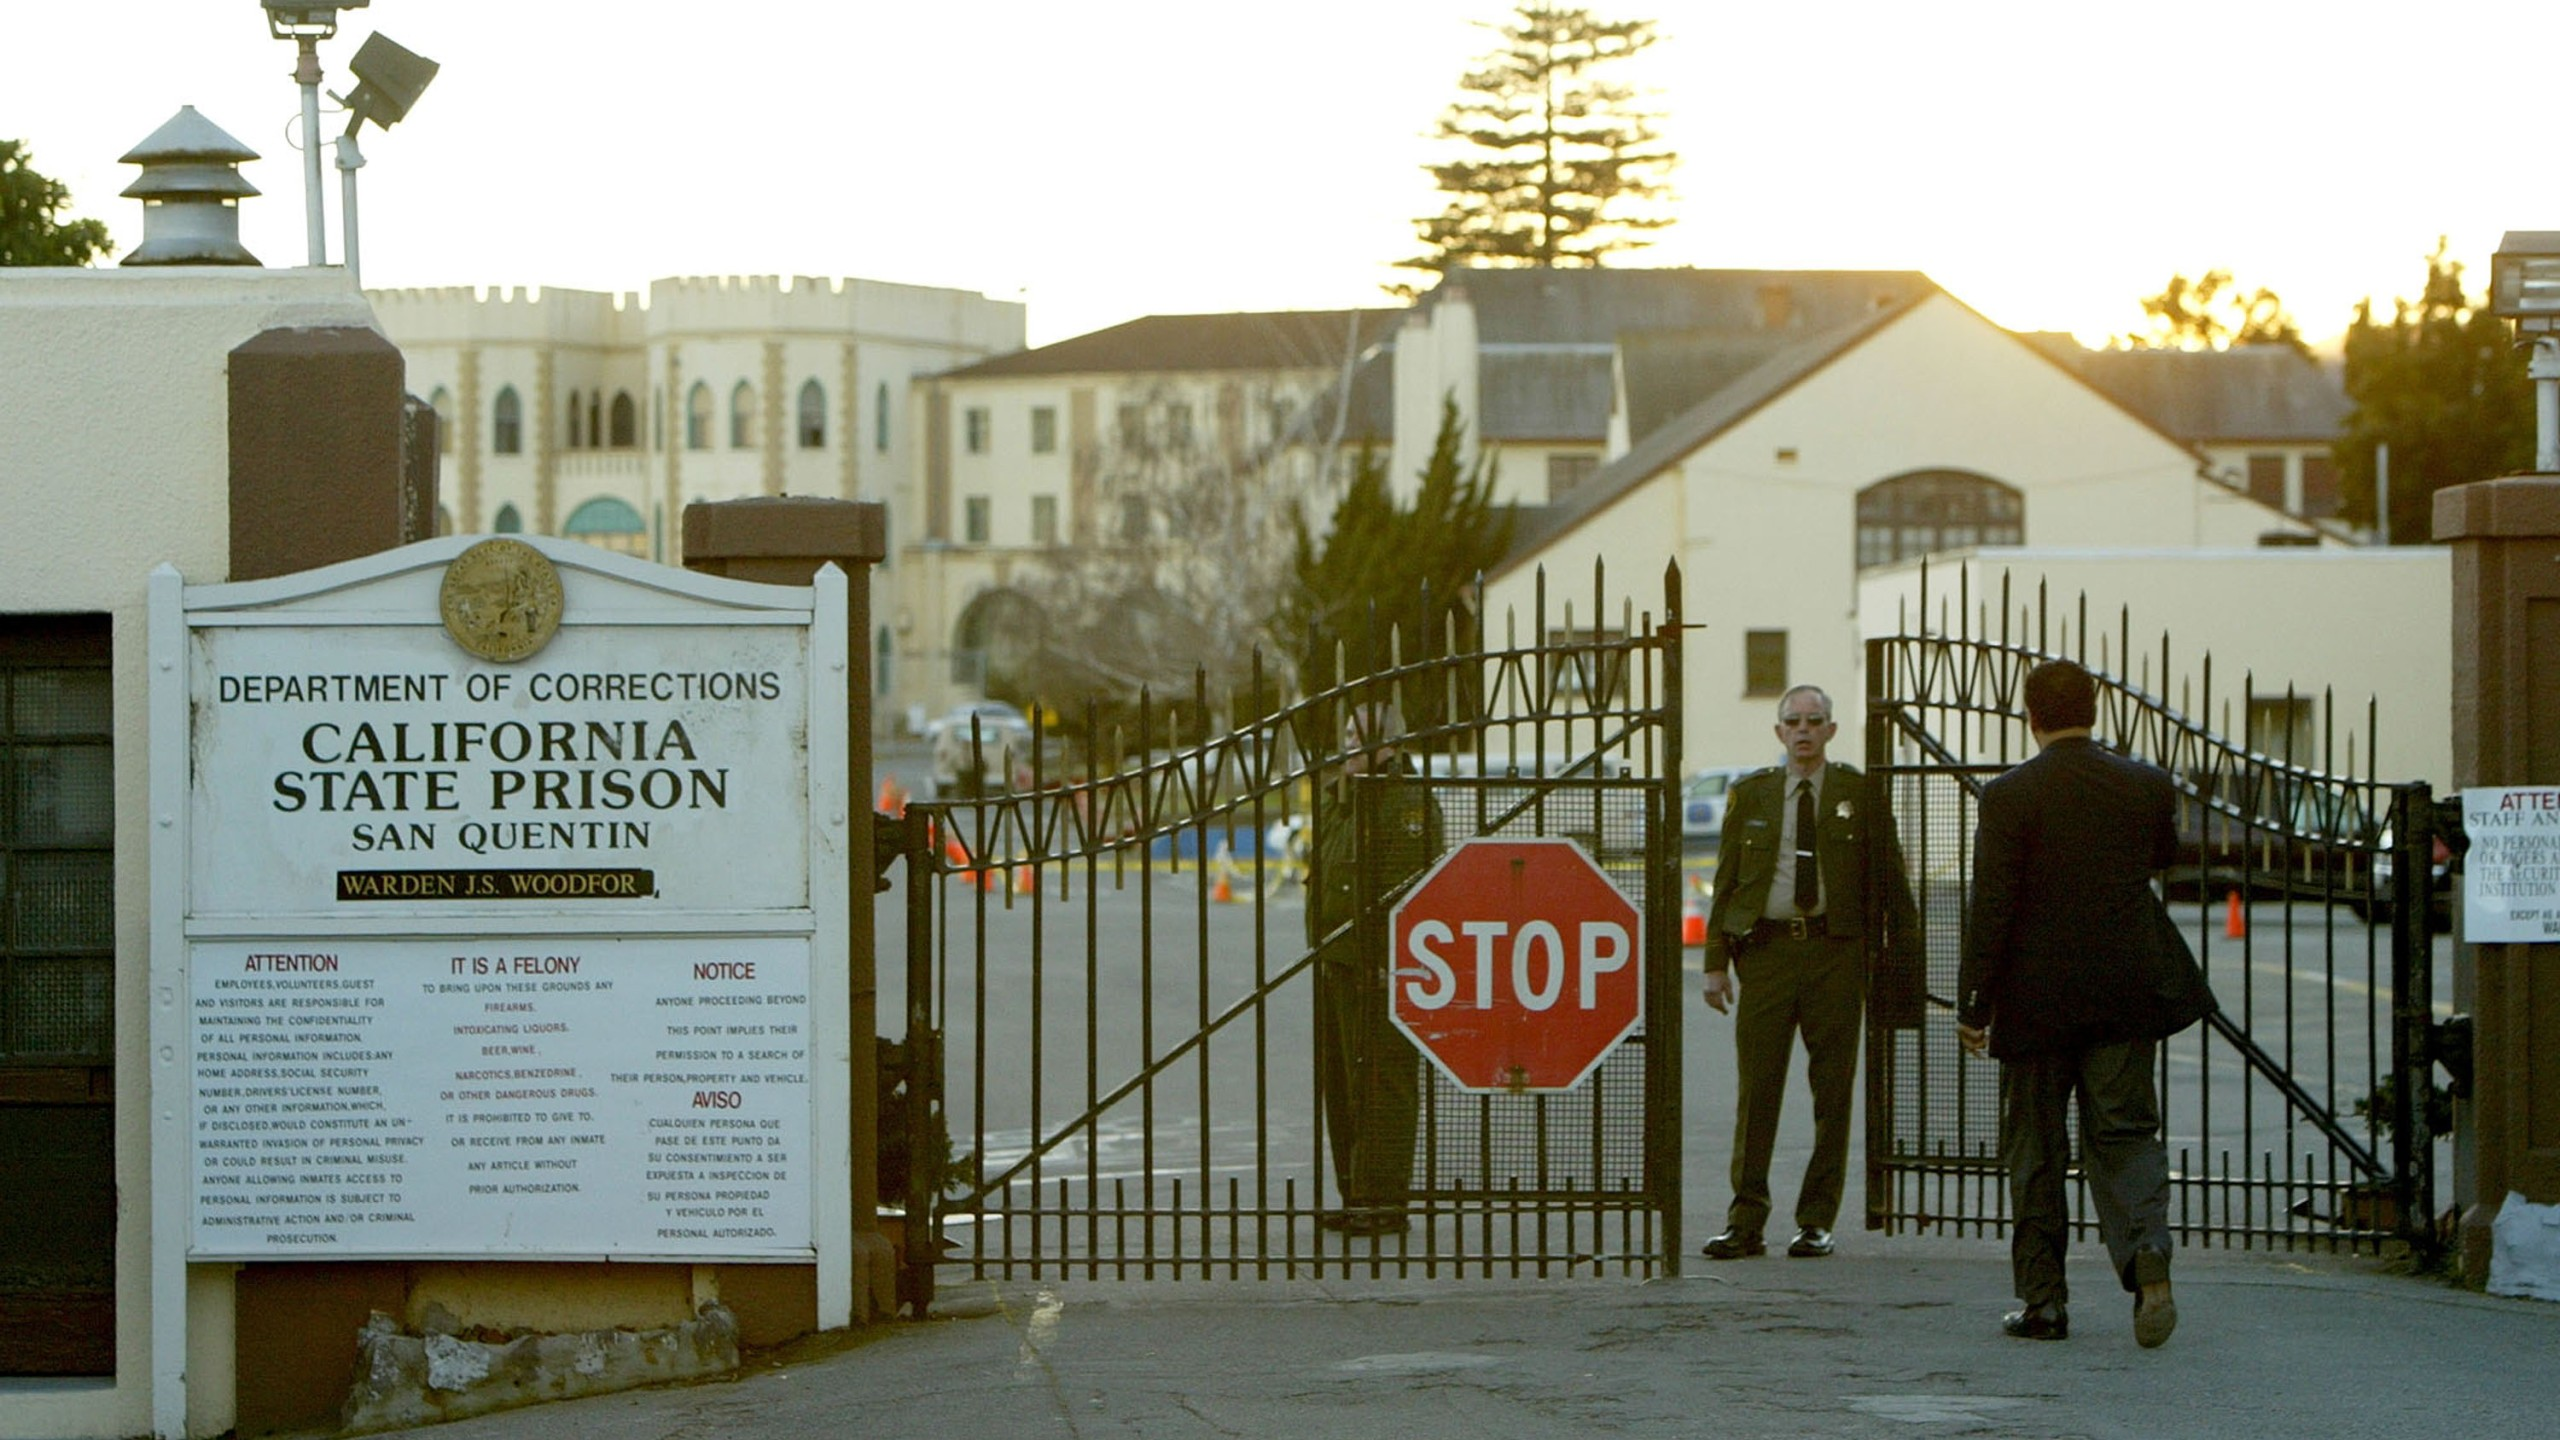 Reverend Jesse Jackson walks towards the California State Prison at San Quentin for a meeting with convicted killer Kevin Cooper on Feb. 9, 2004. (Credit: Justin Sullivan / Getty Images)